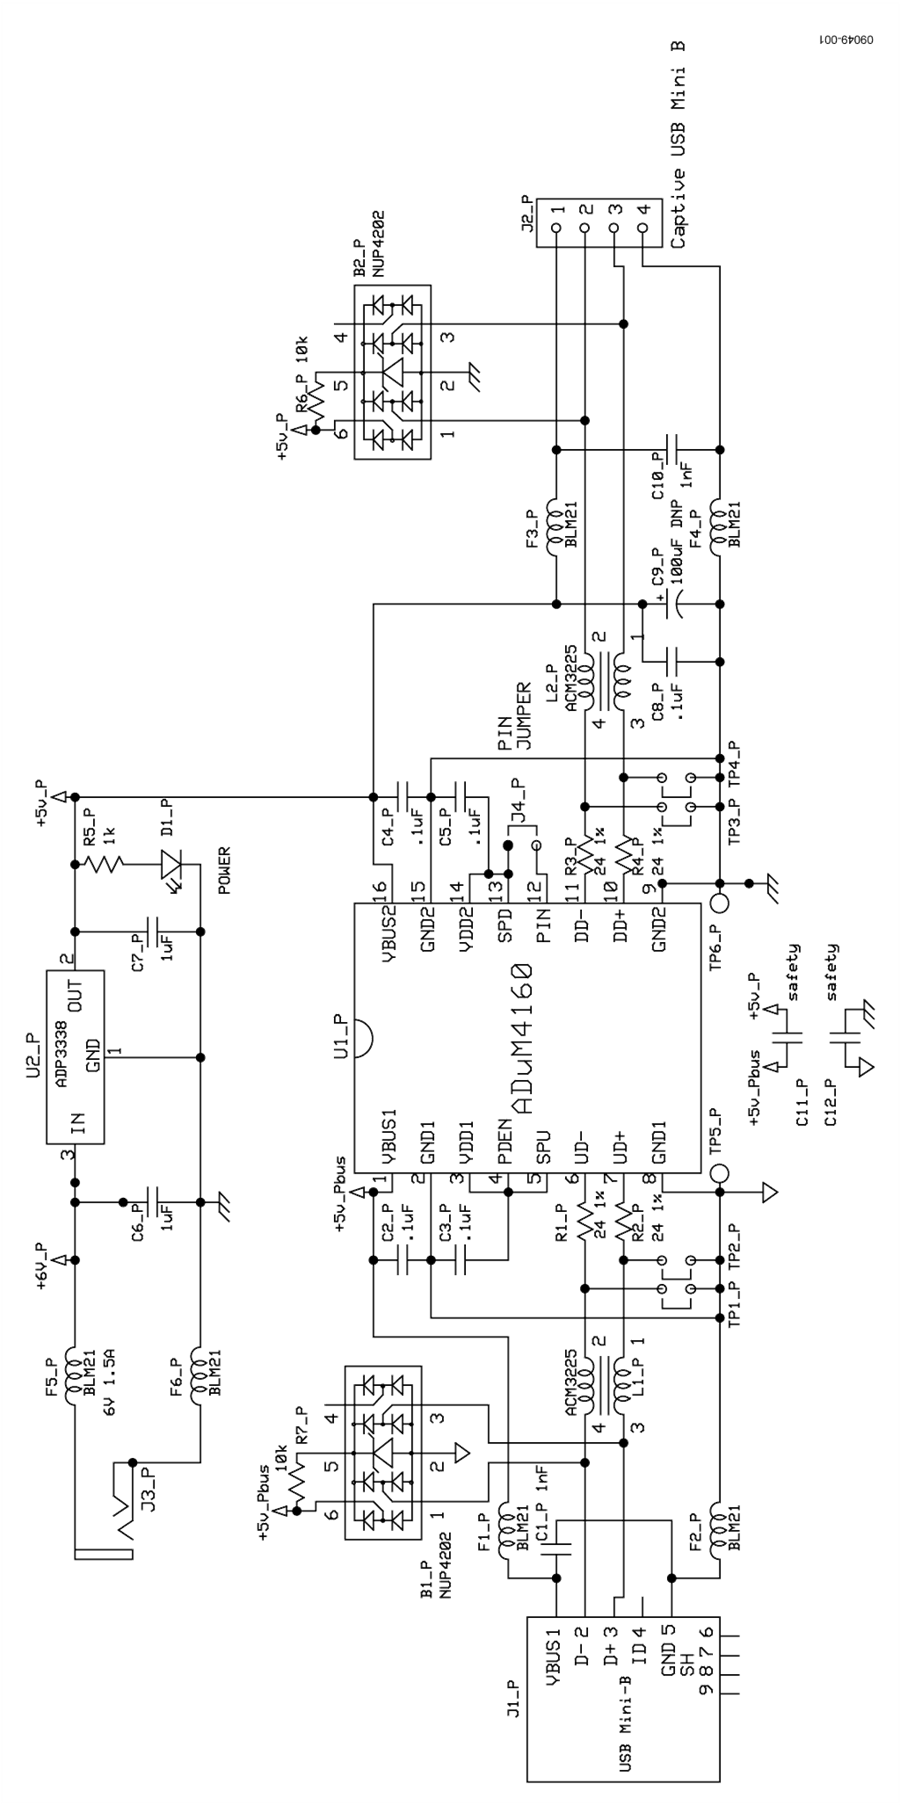 Circuit design png. Cn note analog devices